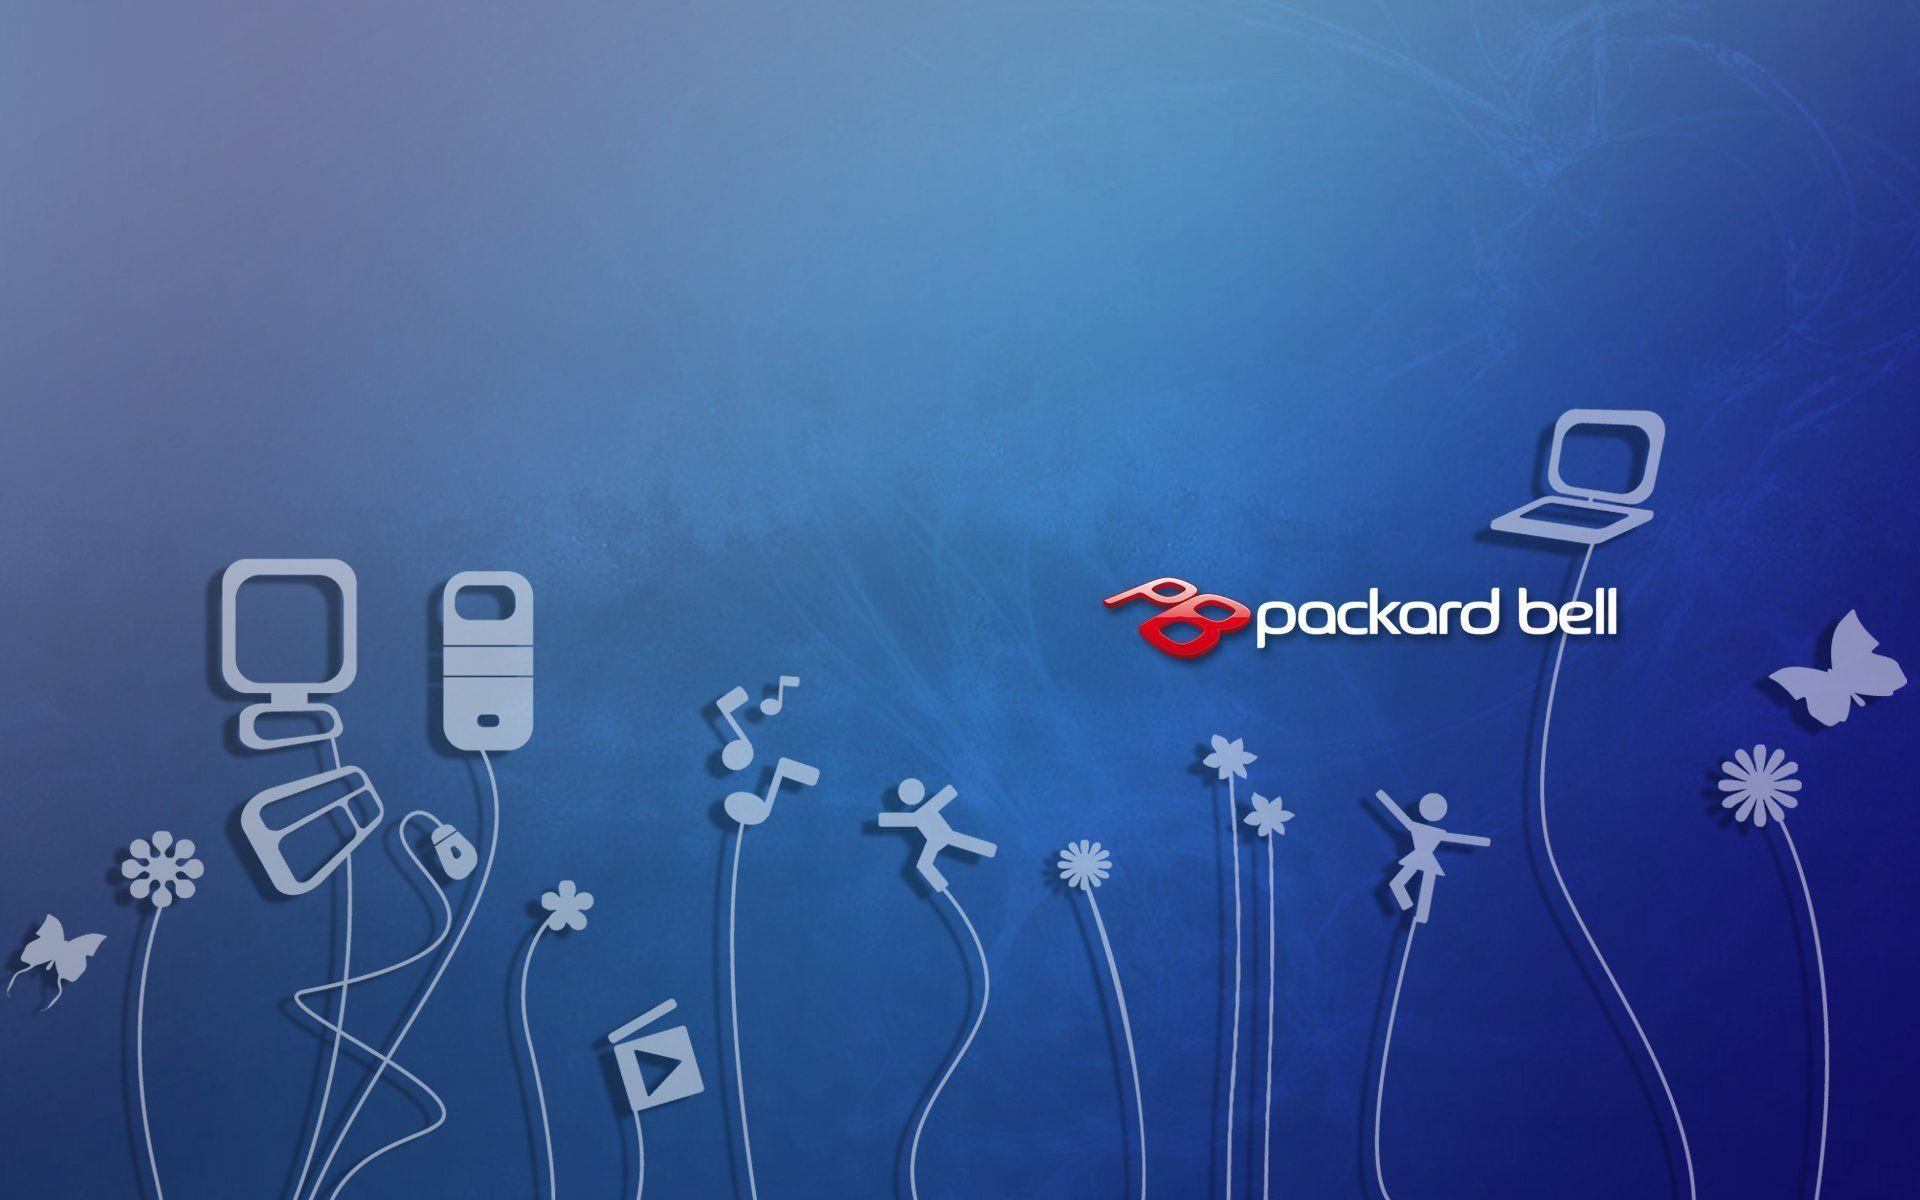 packard bell wallpapers hd windows wallpapers - HD 1920×1200